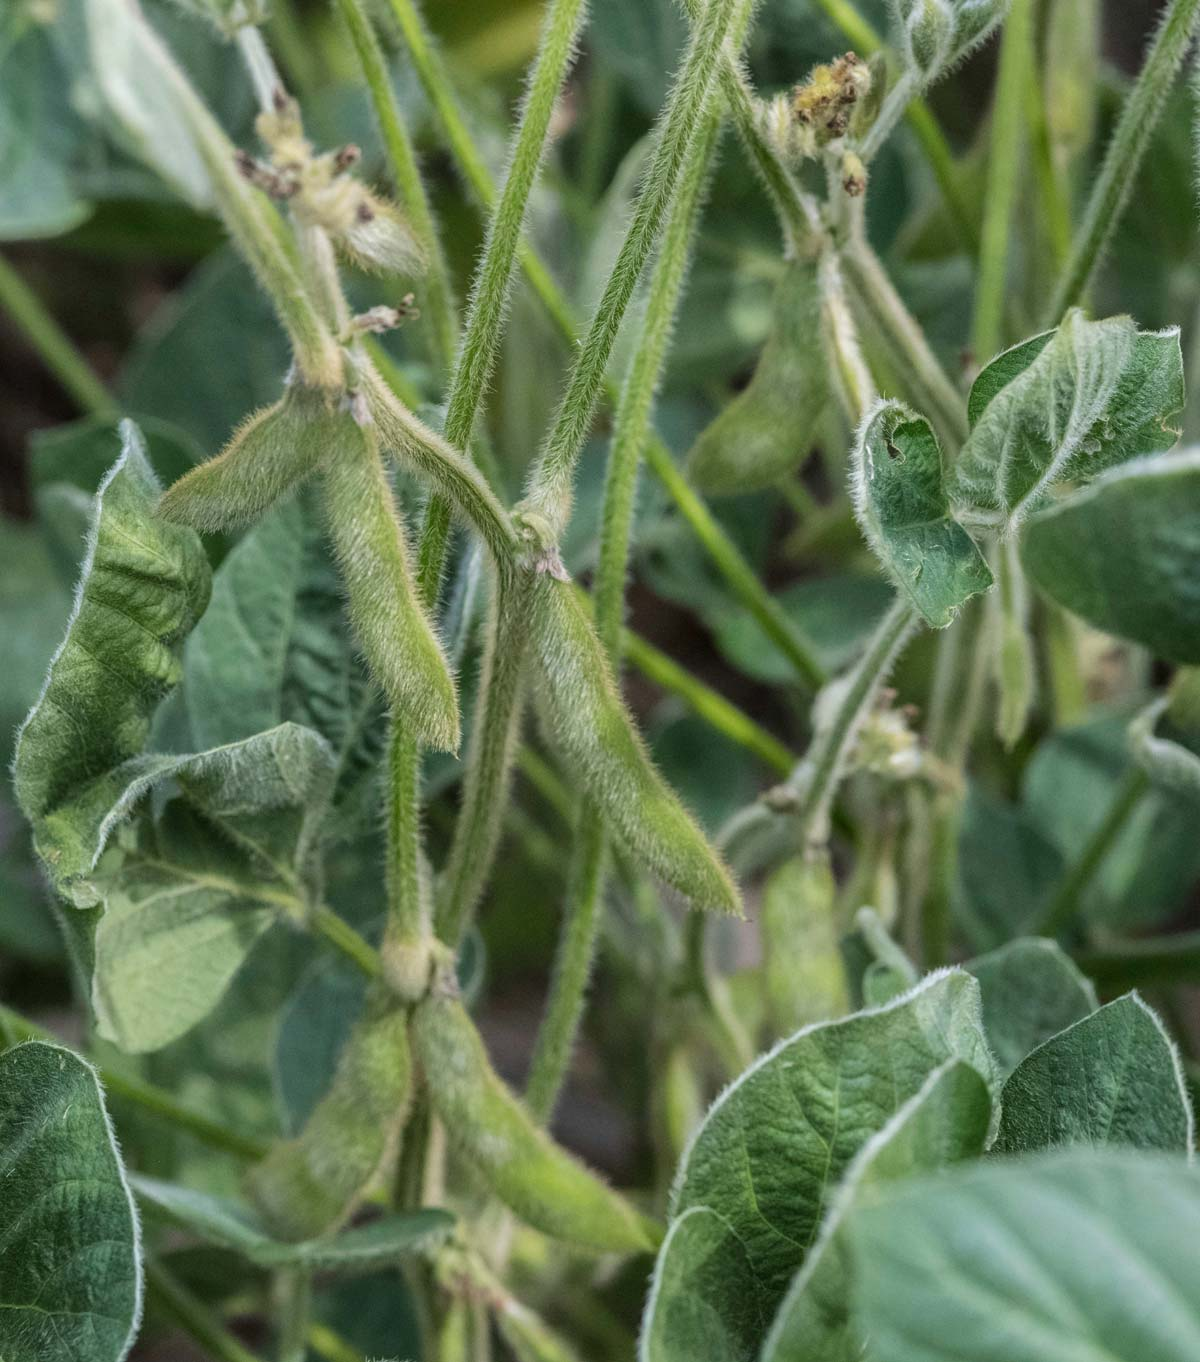 soybeans with suspected dicamba damage